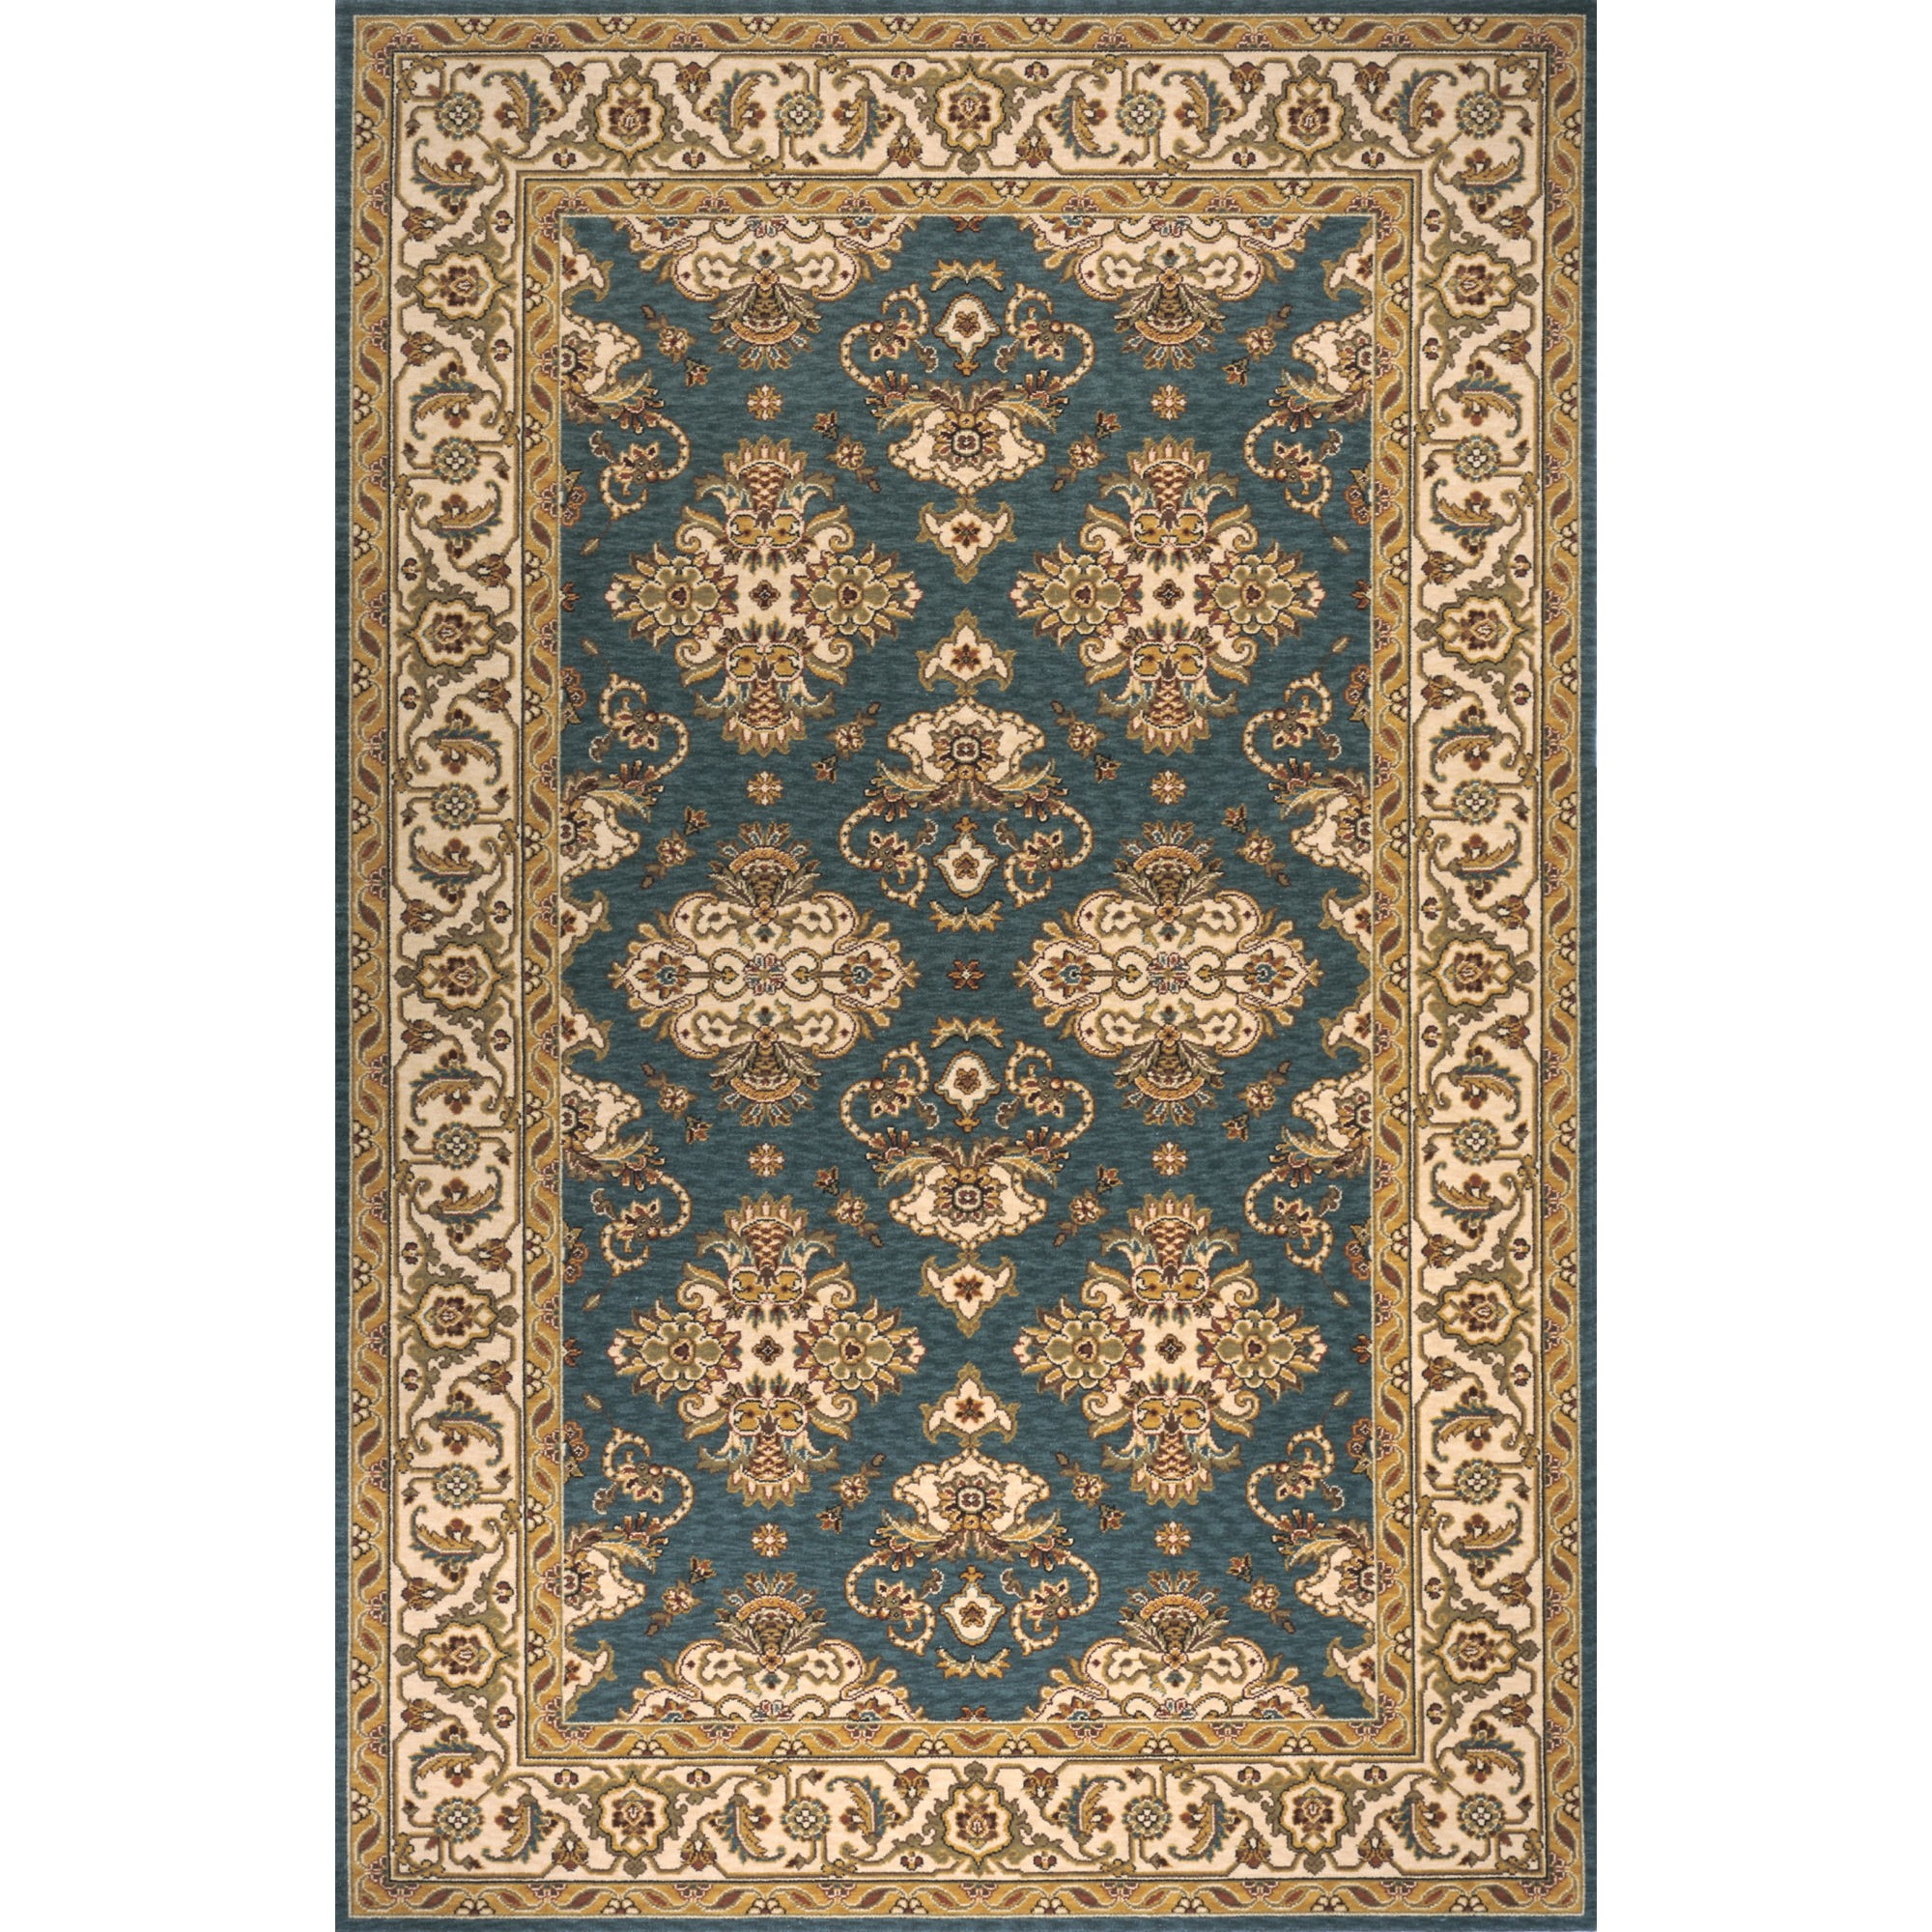 Have A Cool Floor With Momeni Rugs Ideas: Wonderful Persian Garden Teal Blue Rug By Momeni Rugs For Floor Decor Ideas